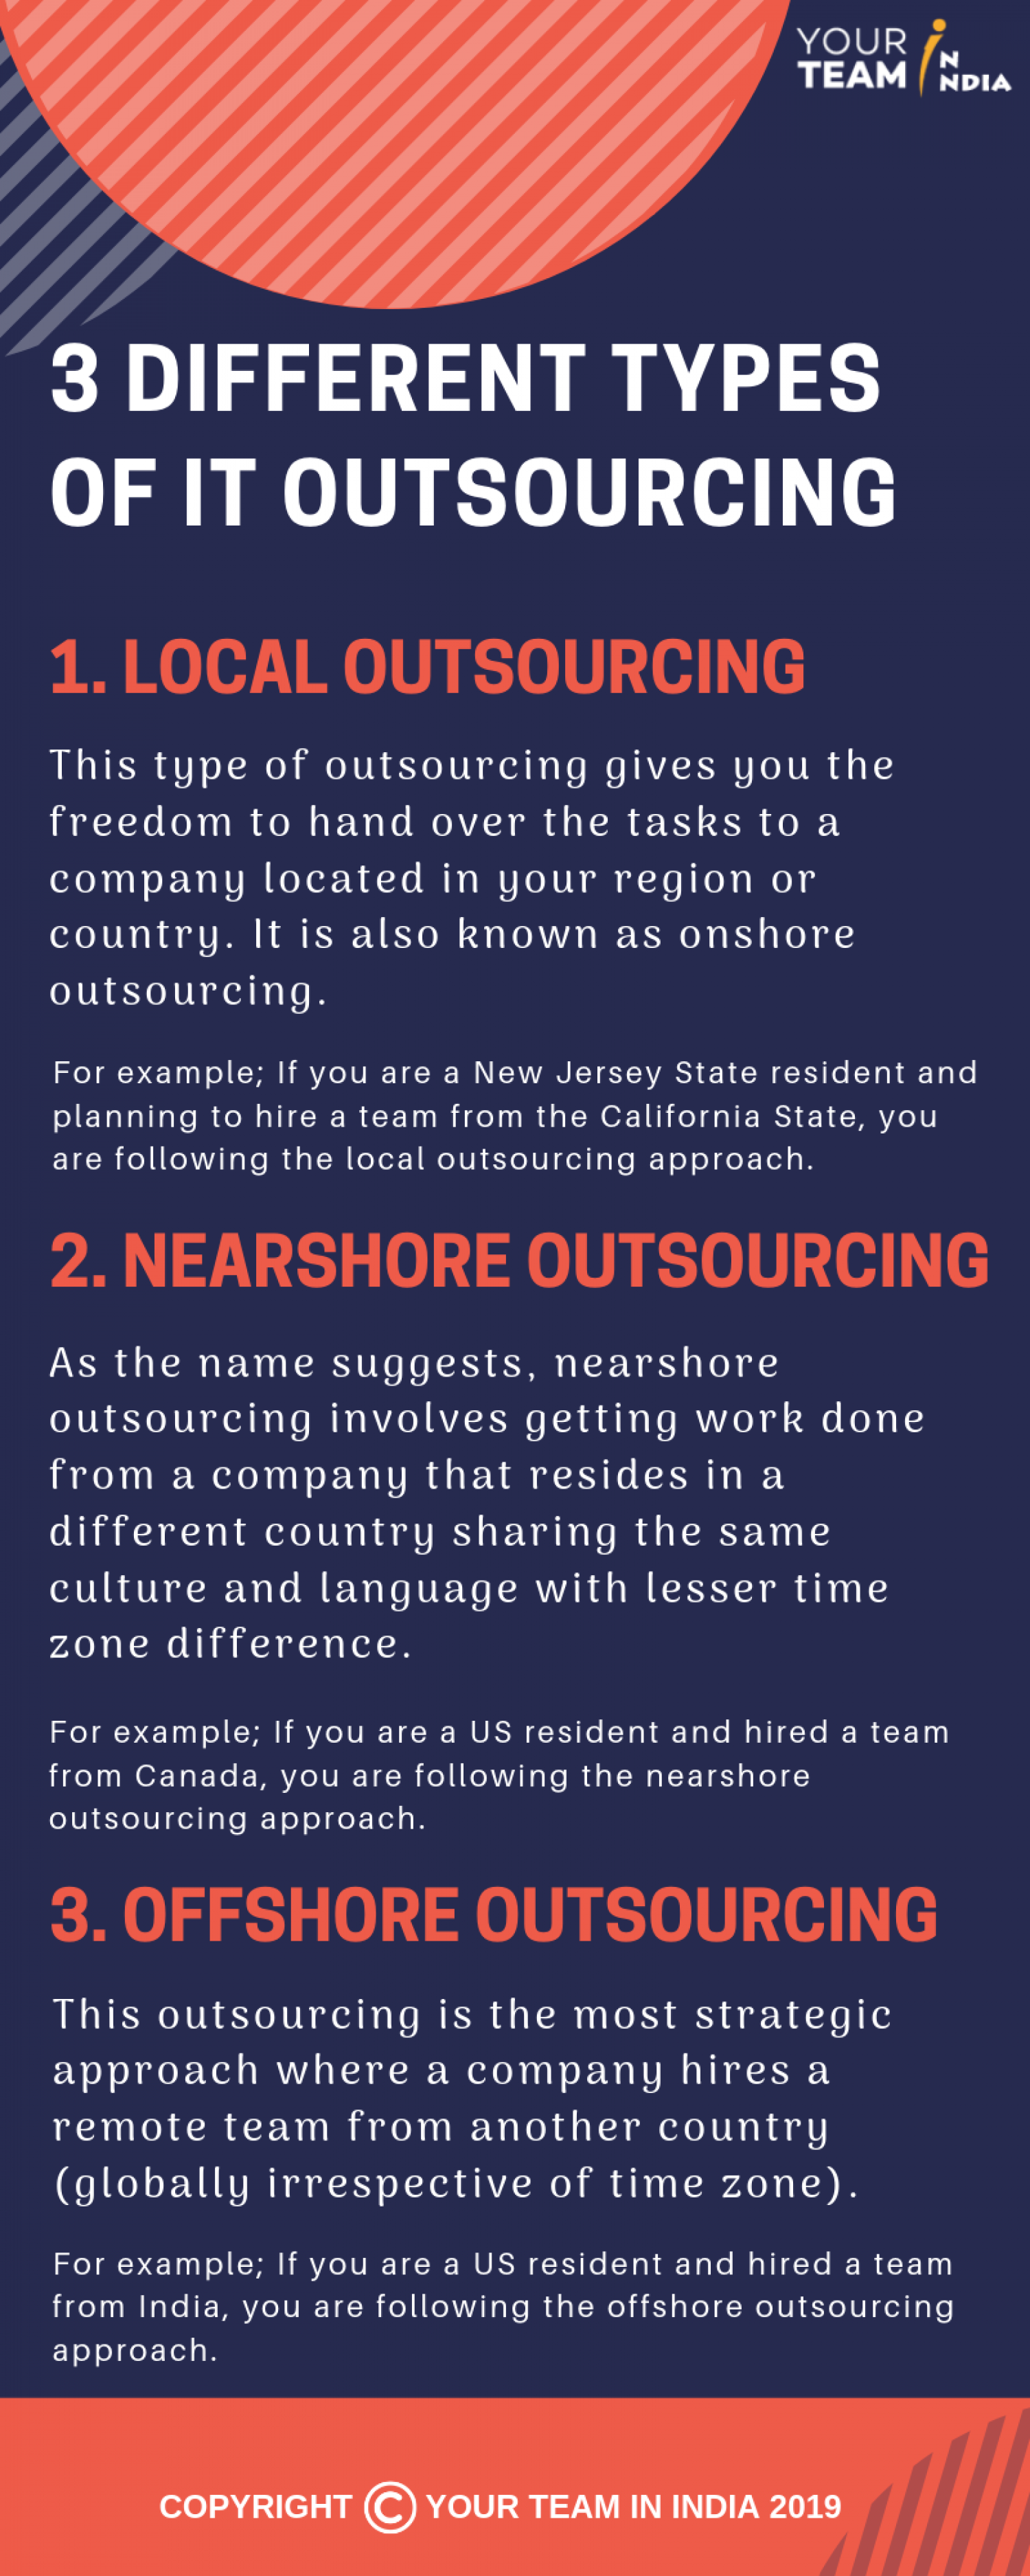 3 Different Types Of IT Outsourcing You Need To Know! Infographic